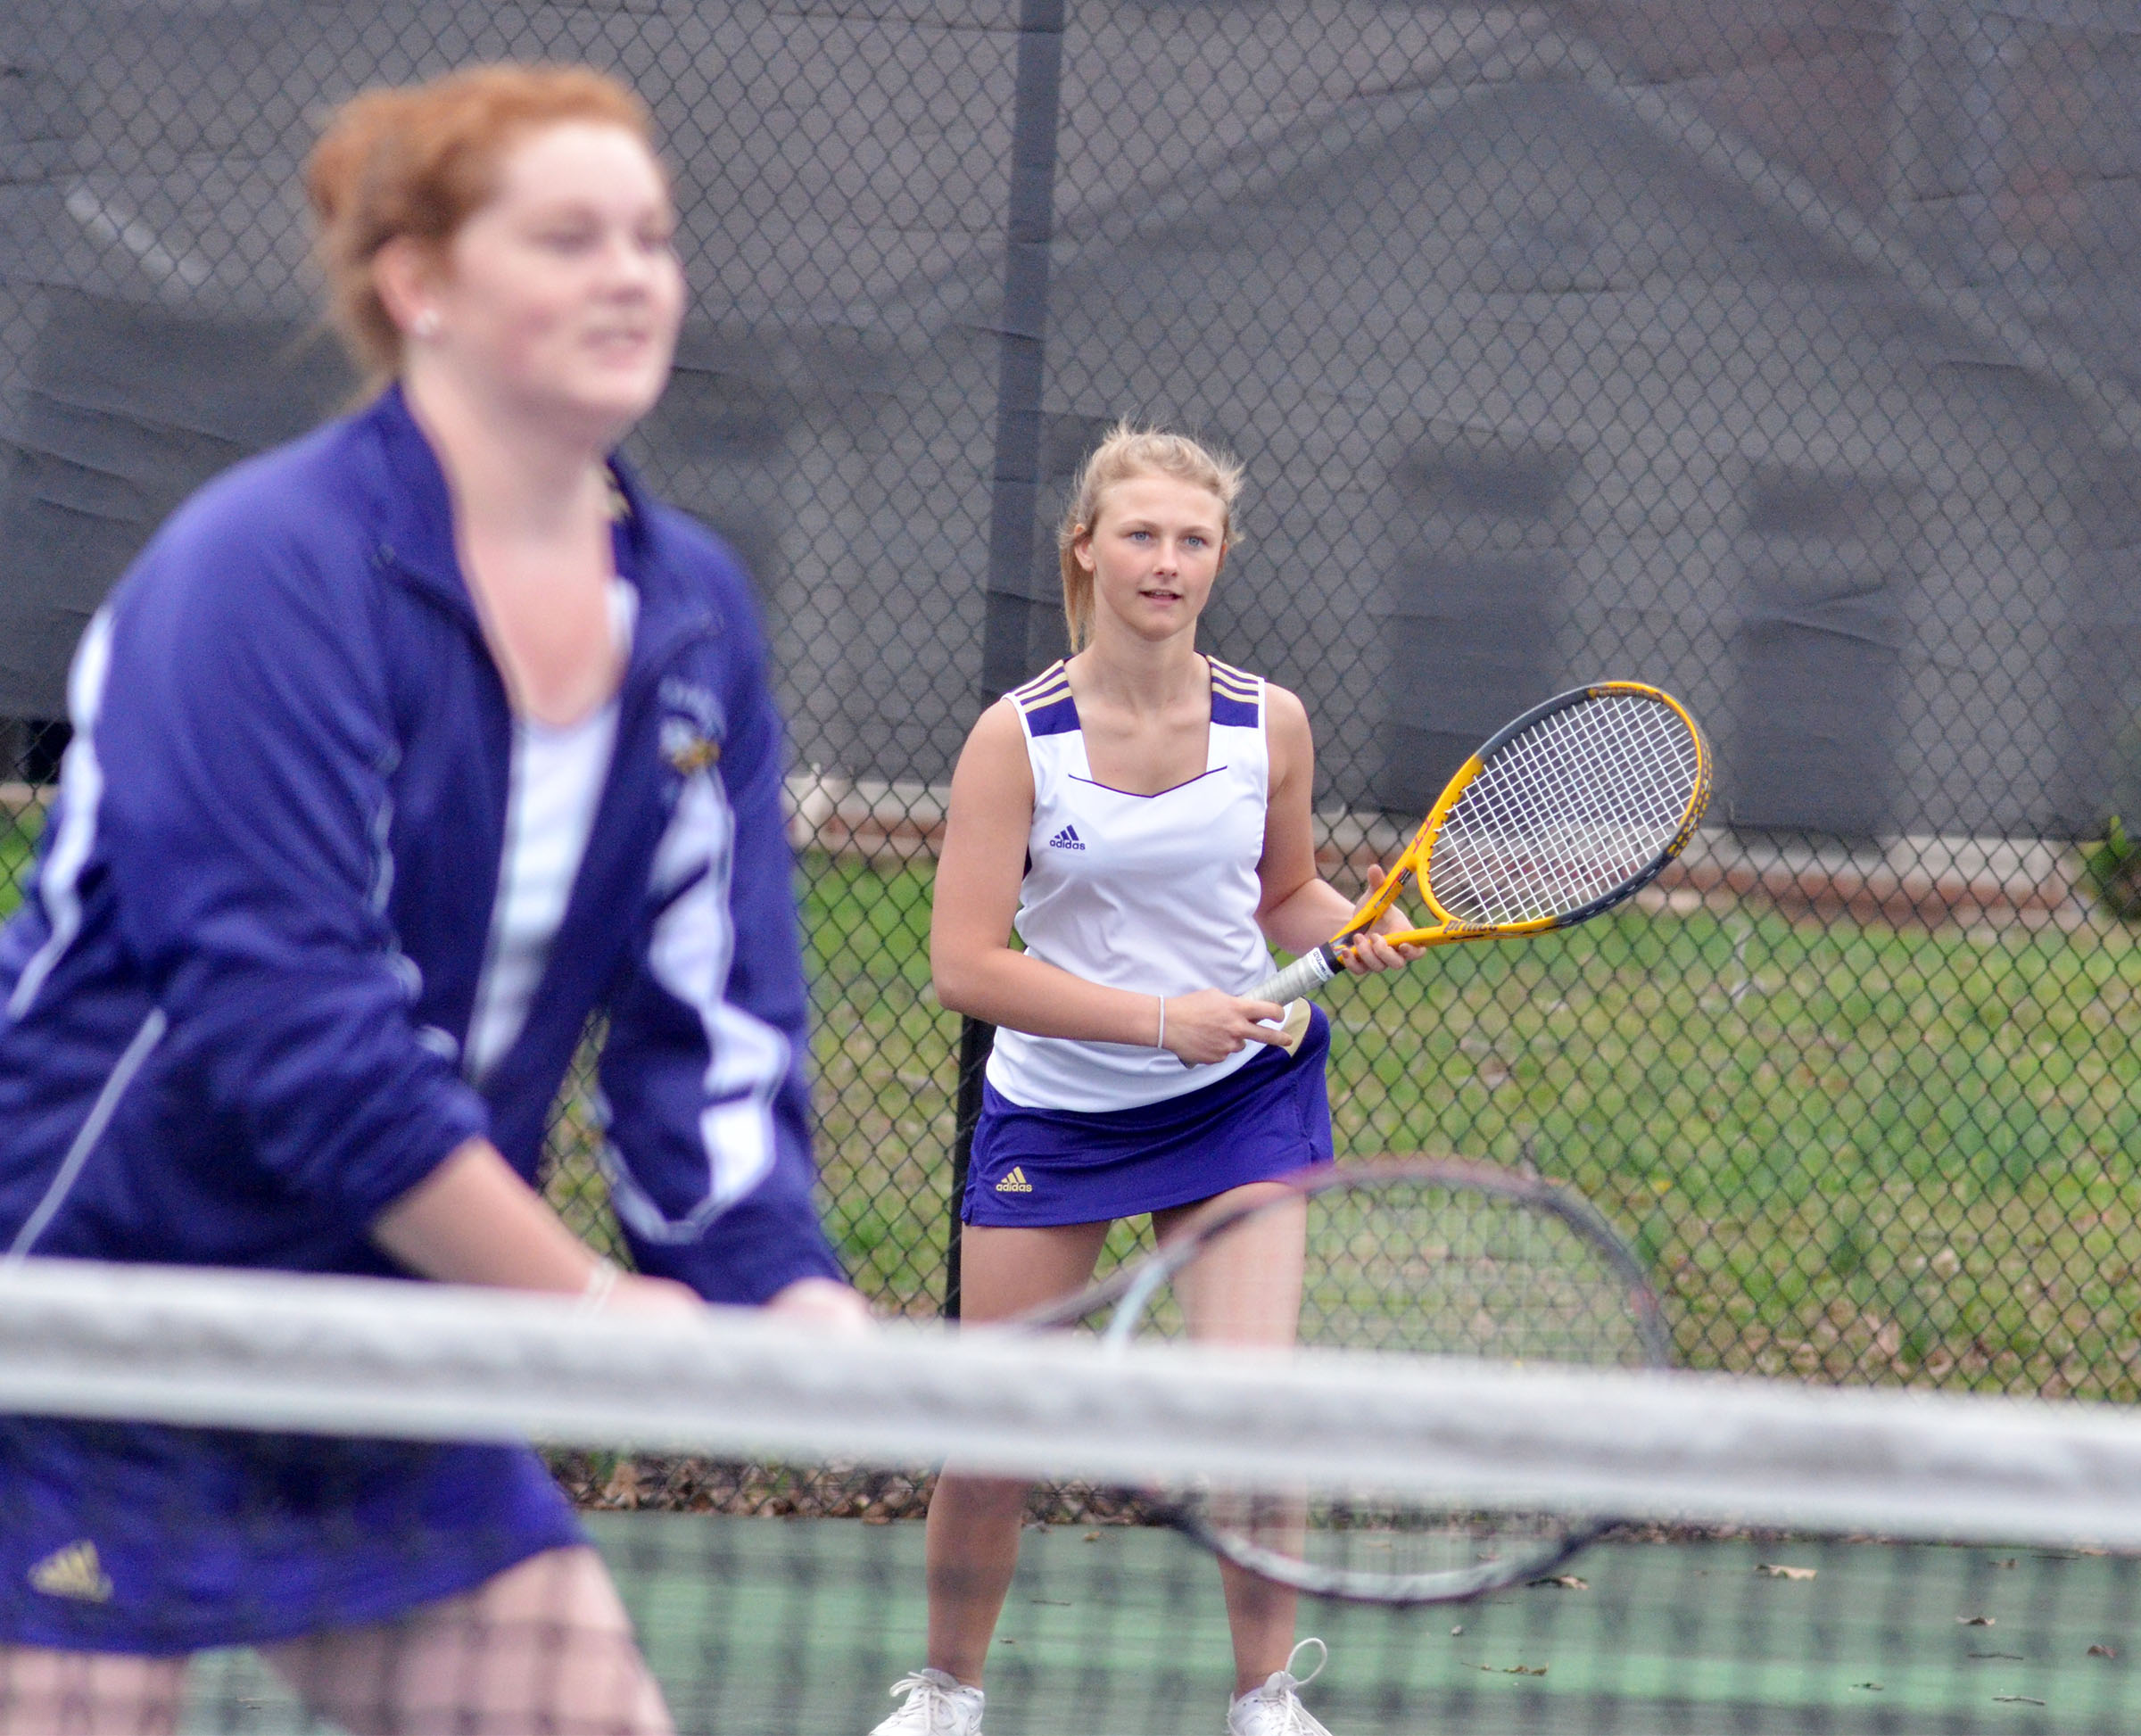 CHS freshman Victoria Cox keeps her eye on the ball as she plays a doubles match with senior Mallory Haley.